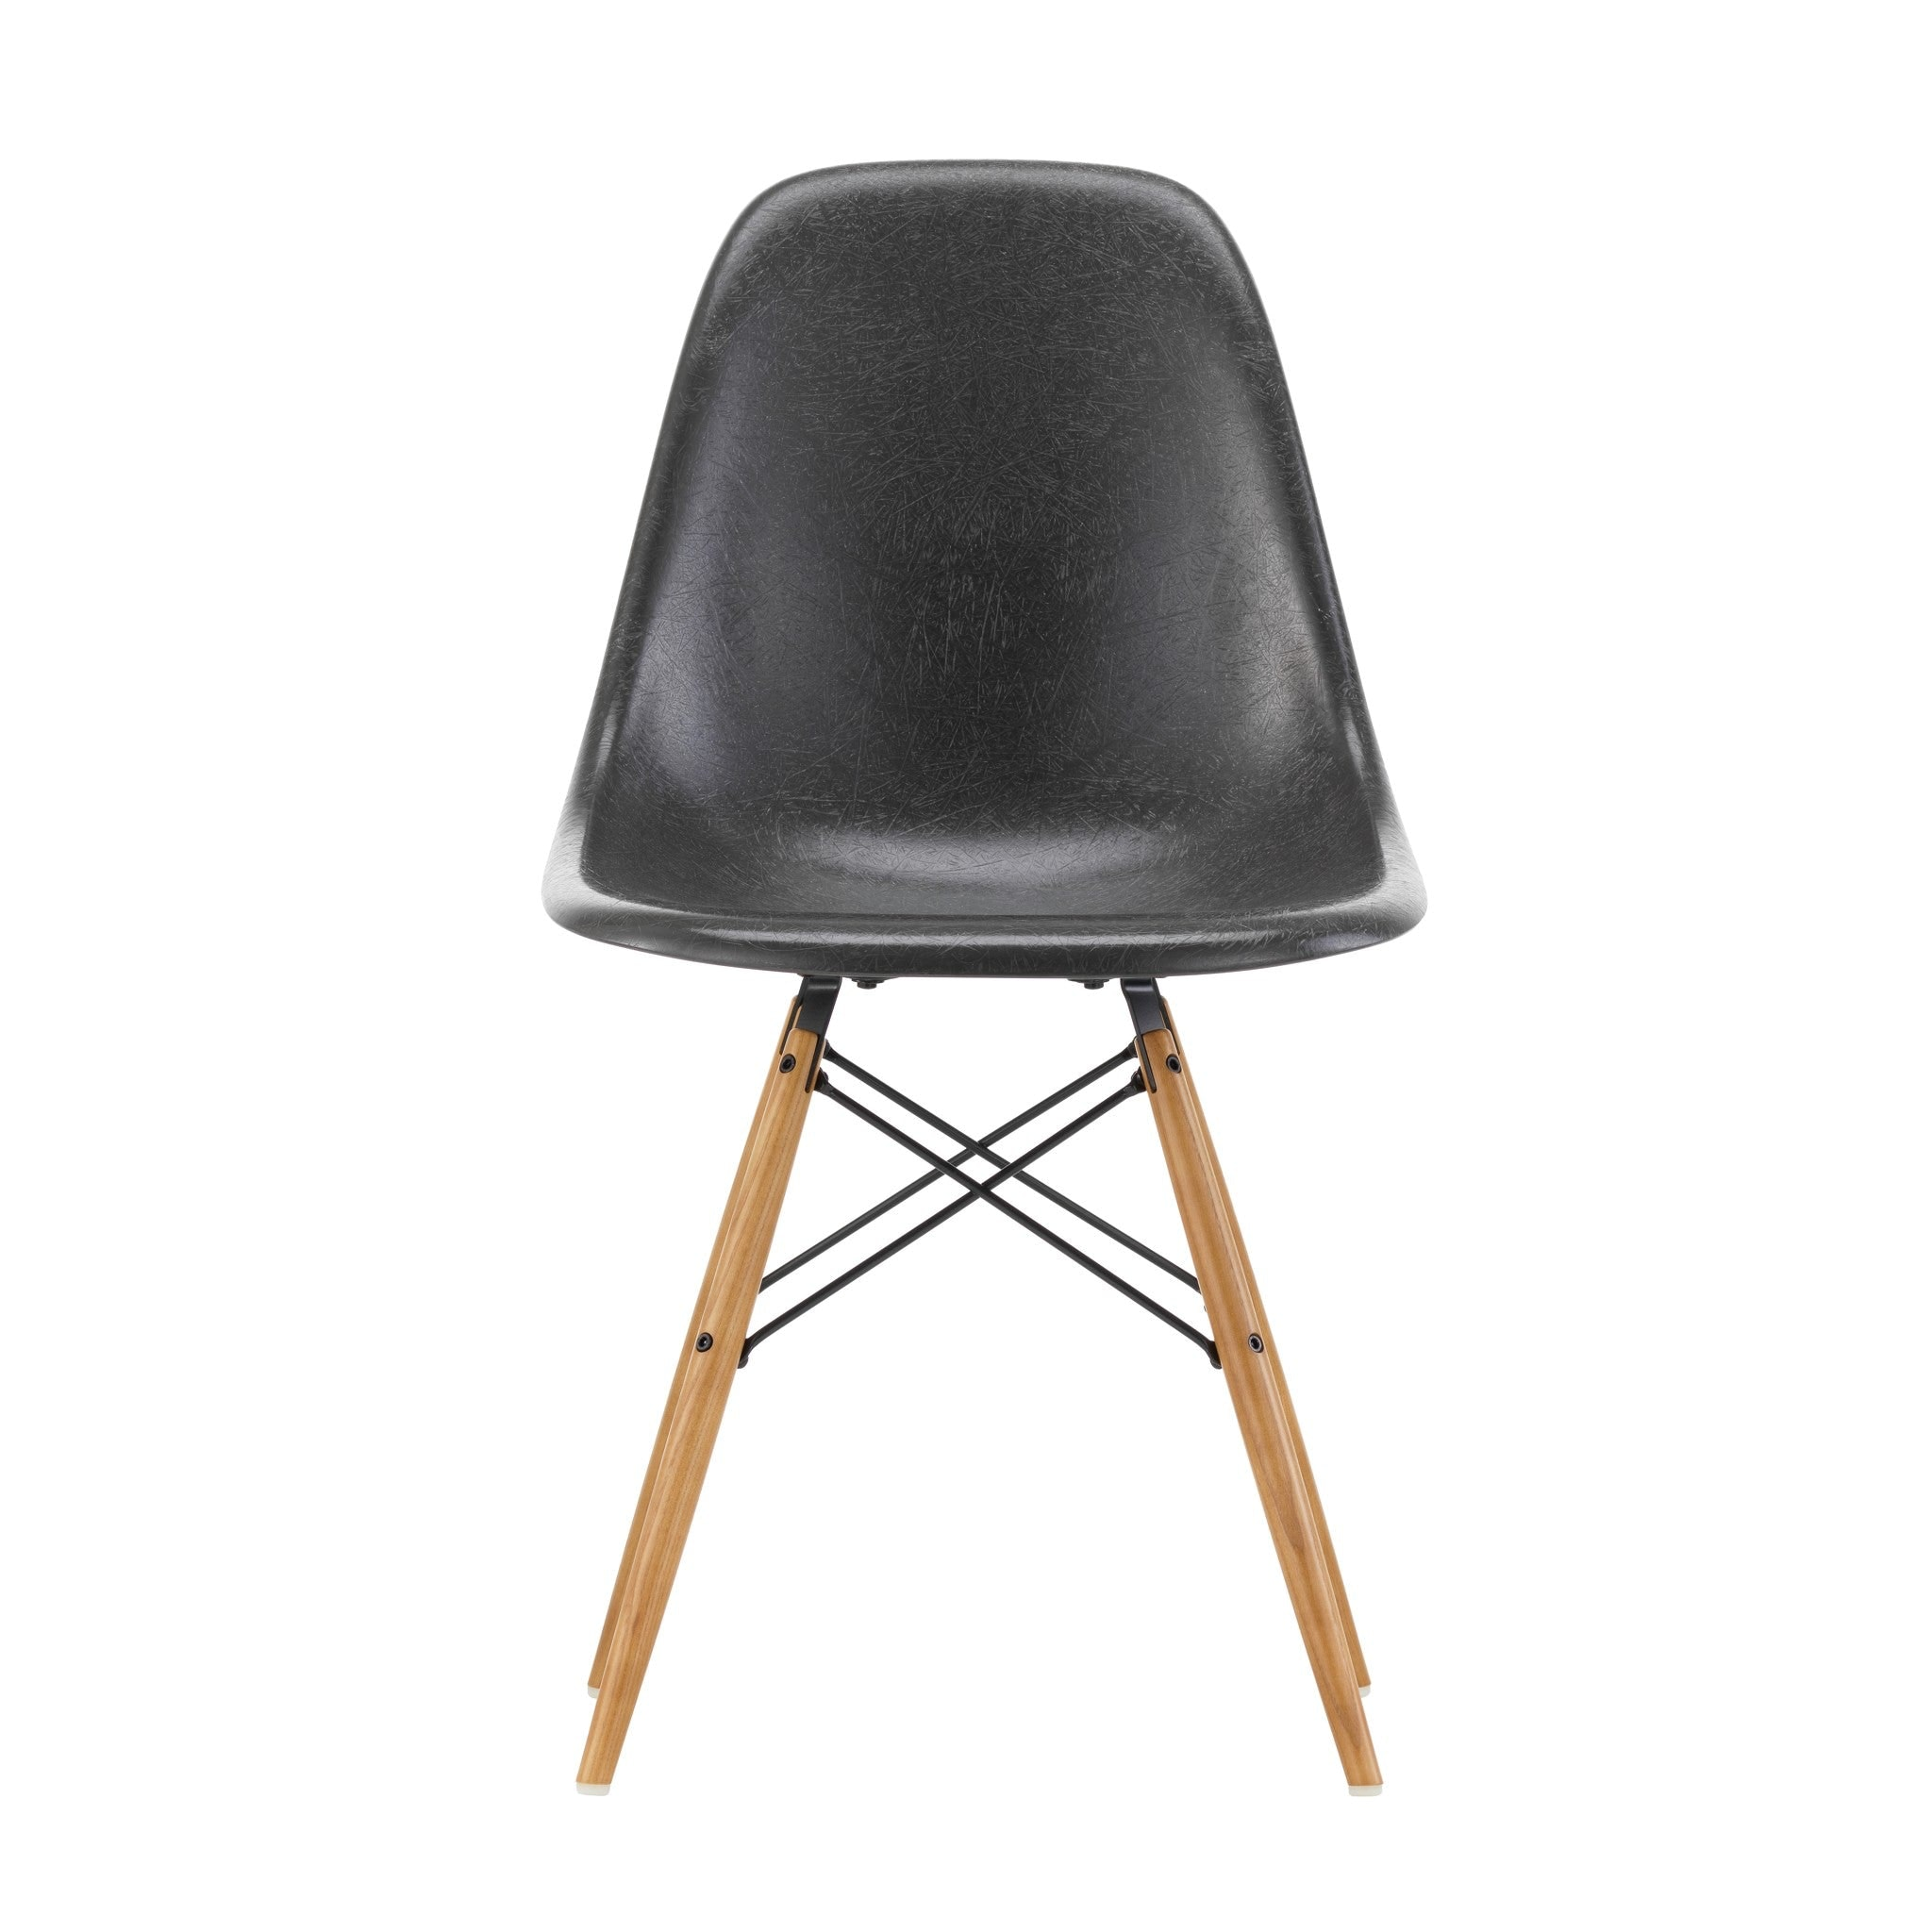 Eames Fiberglass Chair DSW by Vitra